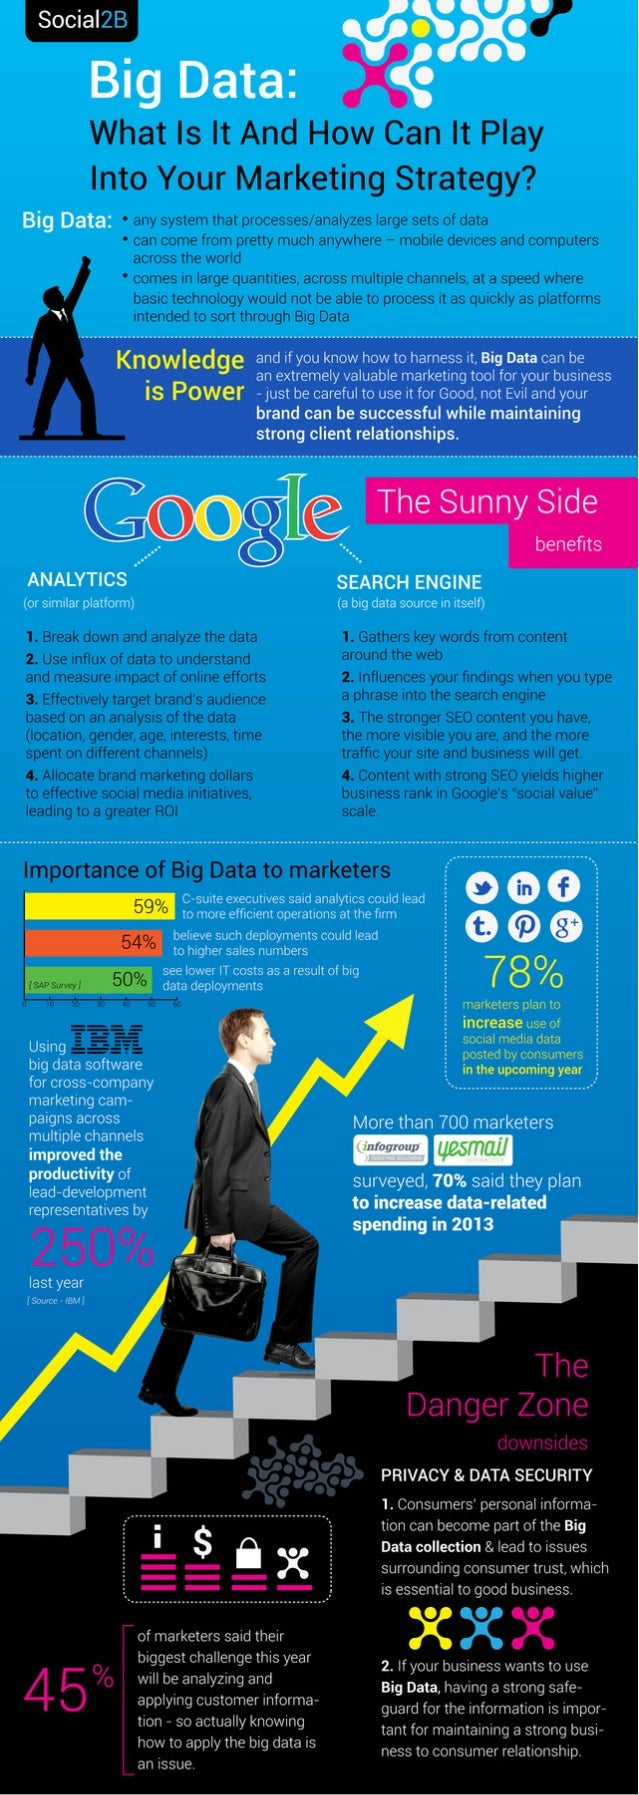 Big Data: What is it and how can it play into your marketing strategy?